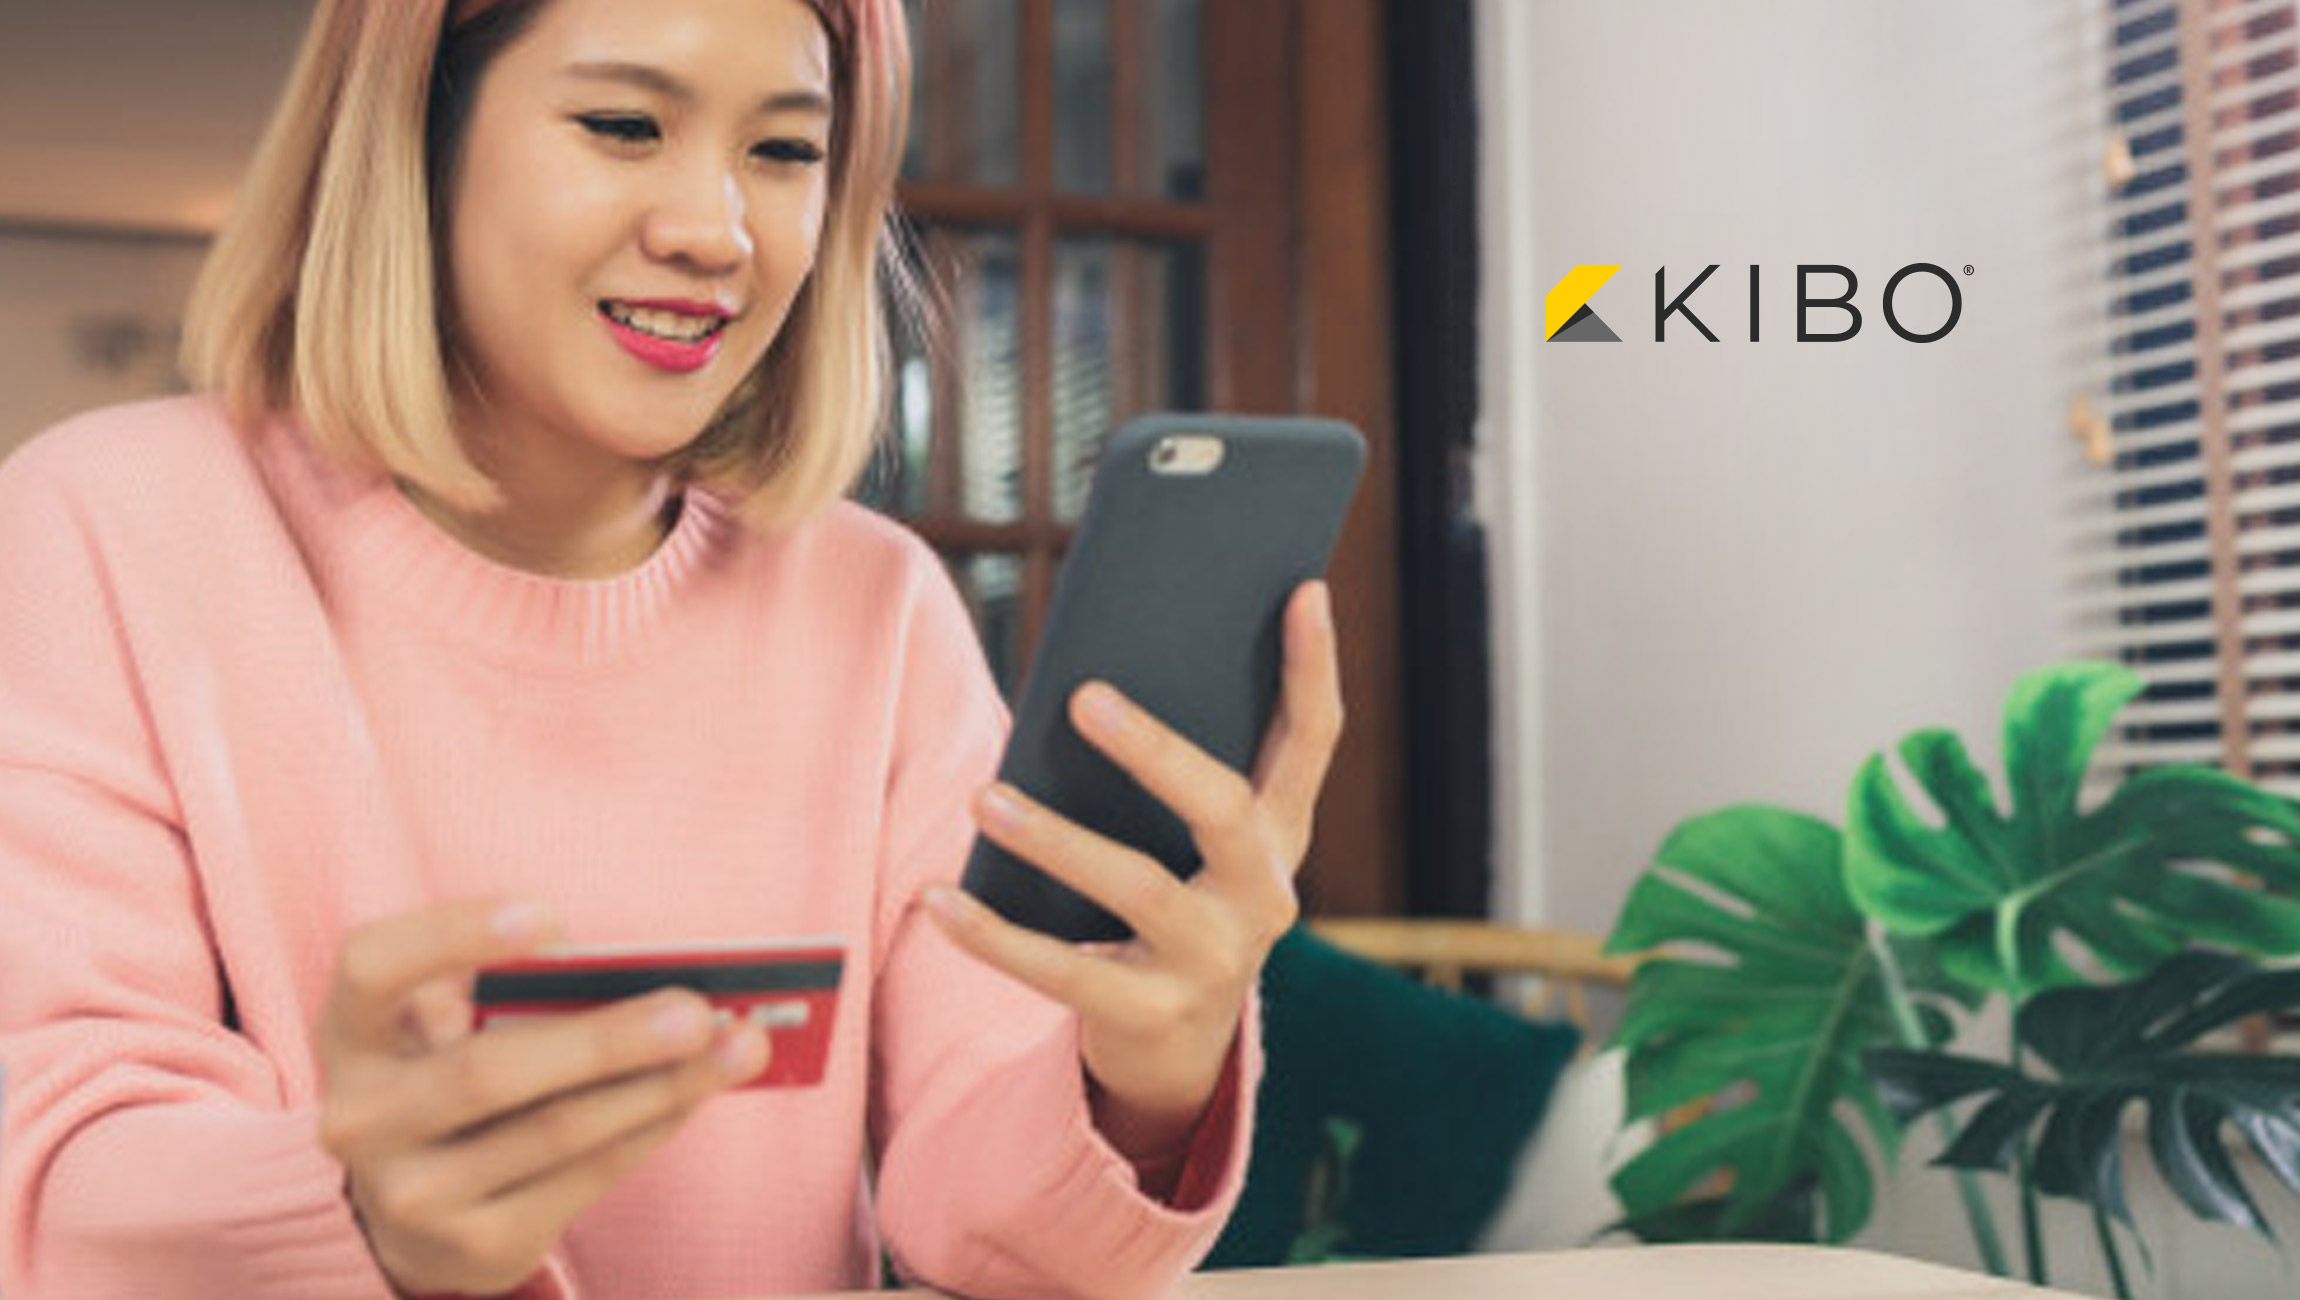 rue21 Selects Kibo to Prepare for 2019 Sales Cycle